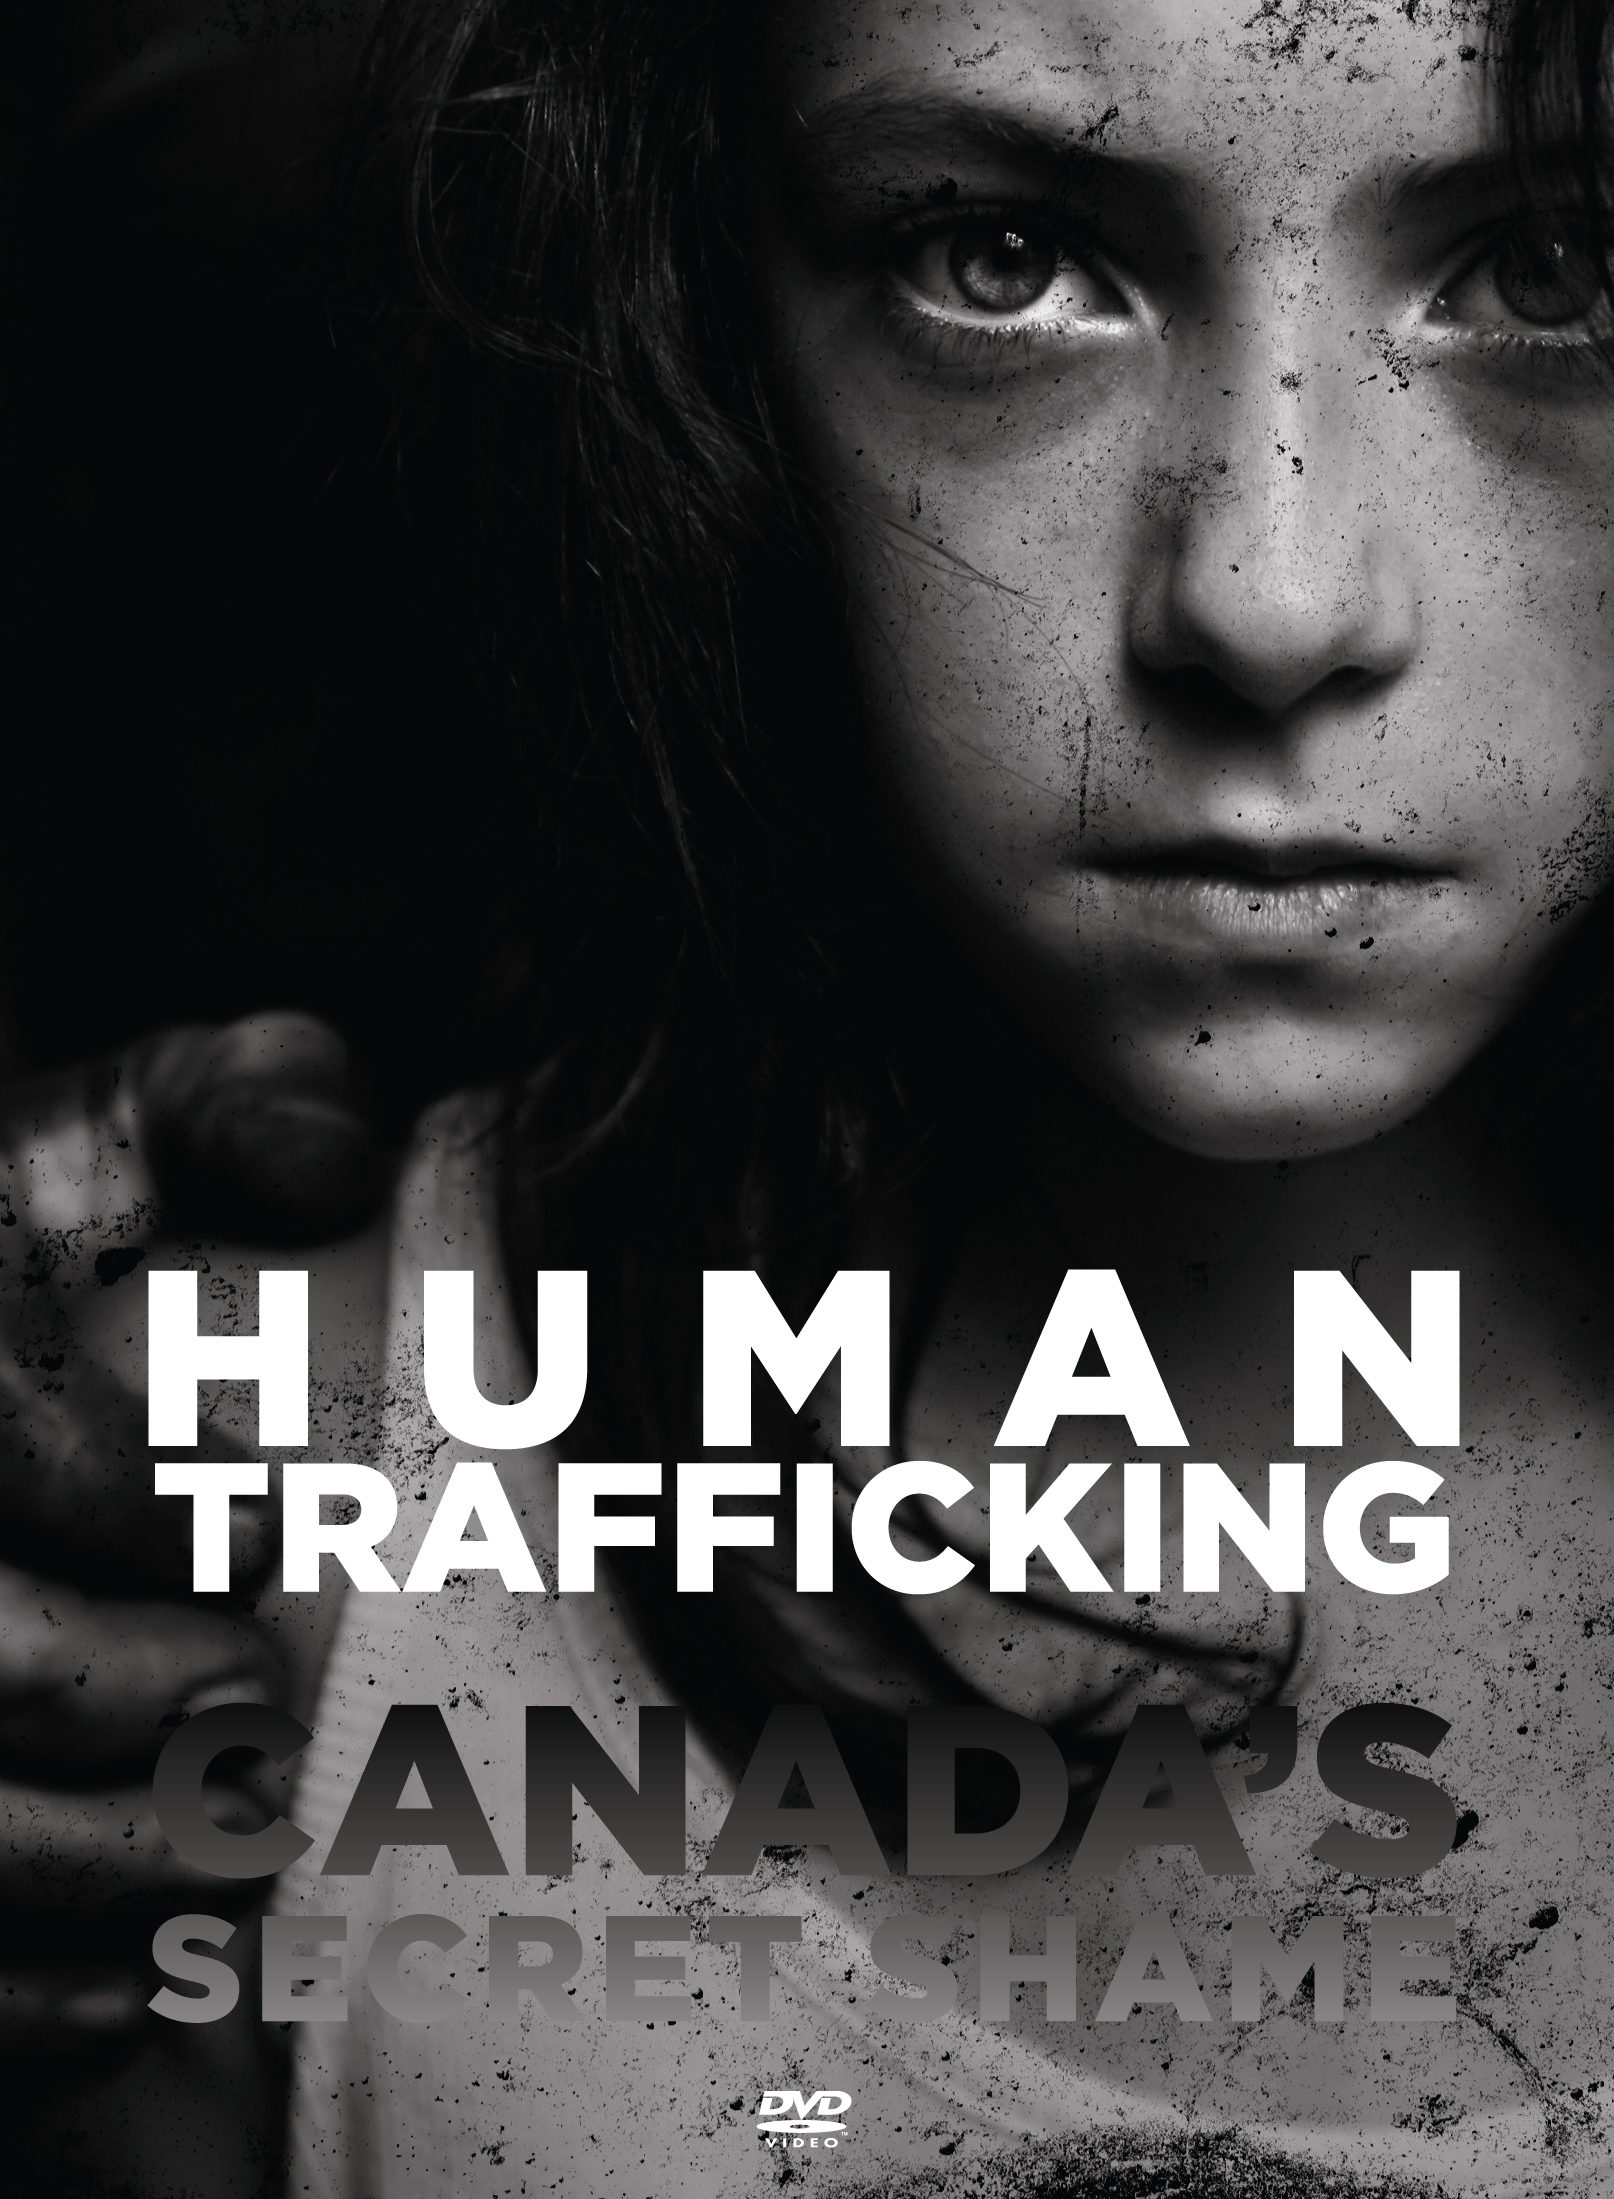 Human Trafficking: Canada's Secret Shame